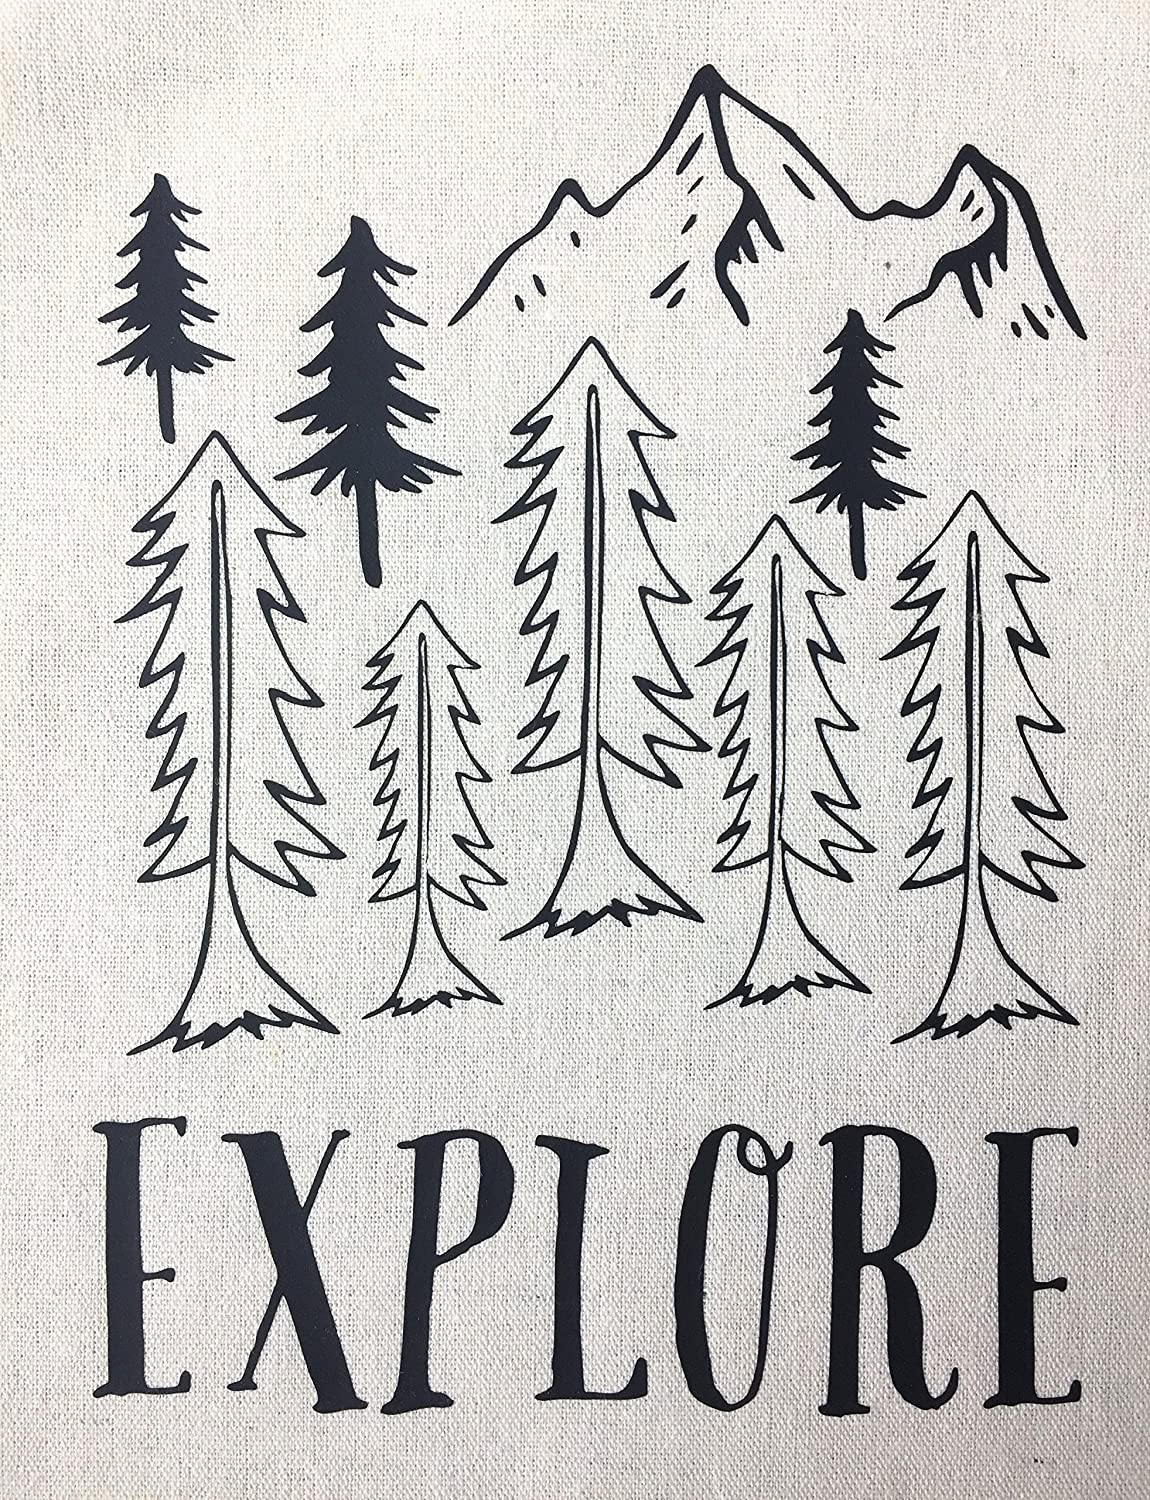 Explore Wall Hanging Banner 8x11